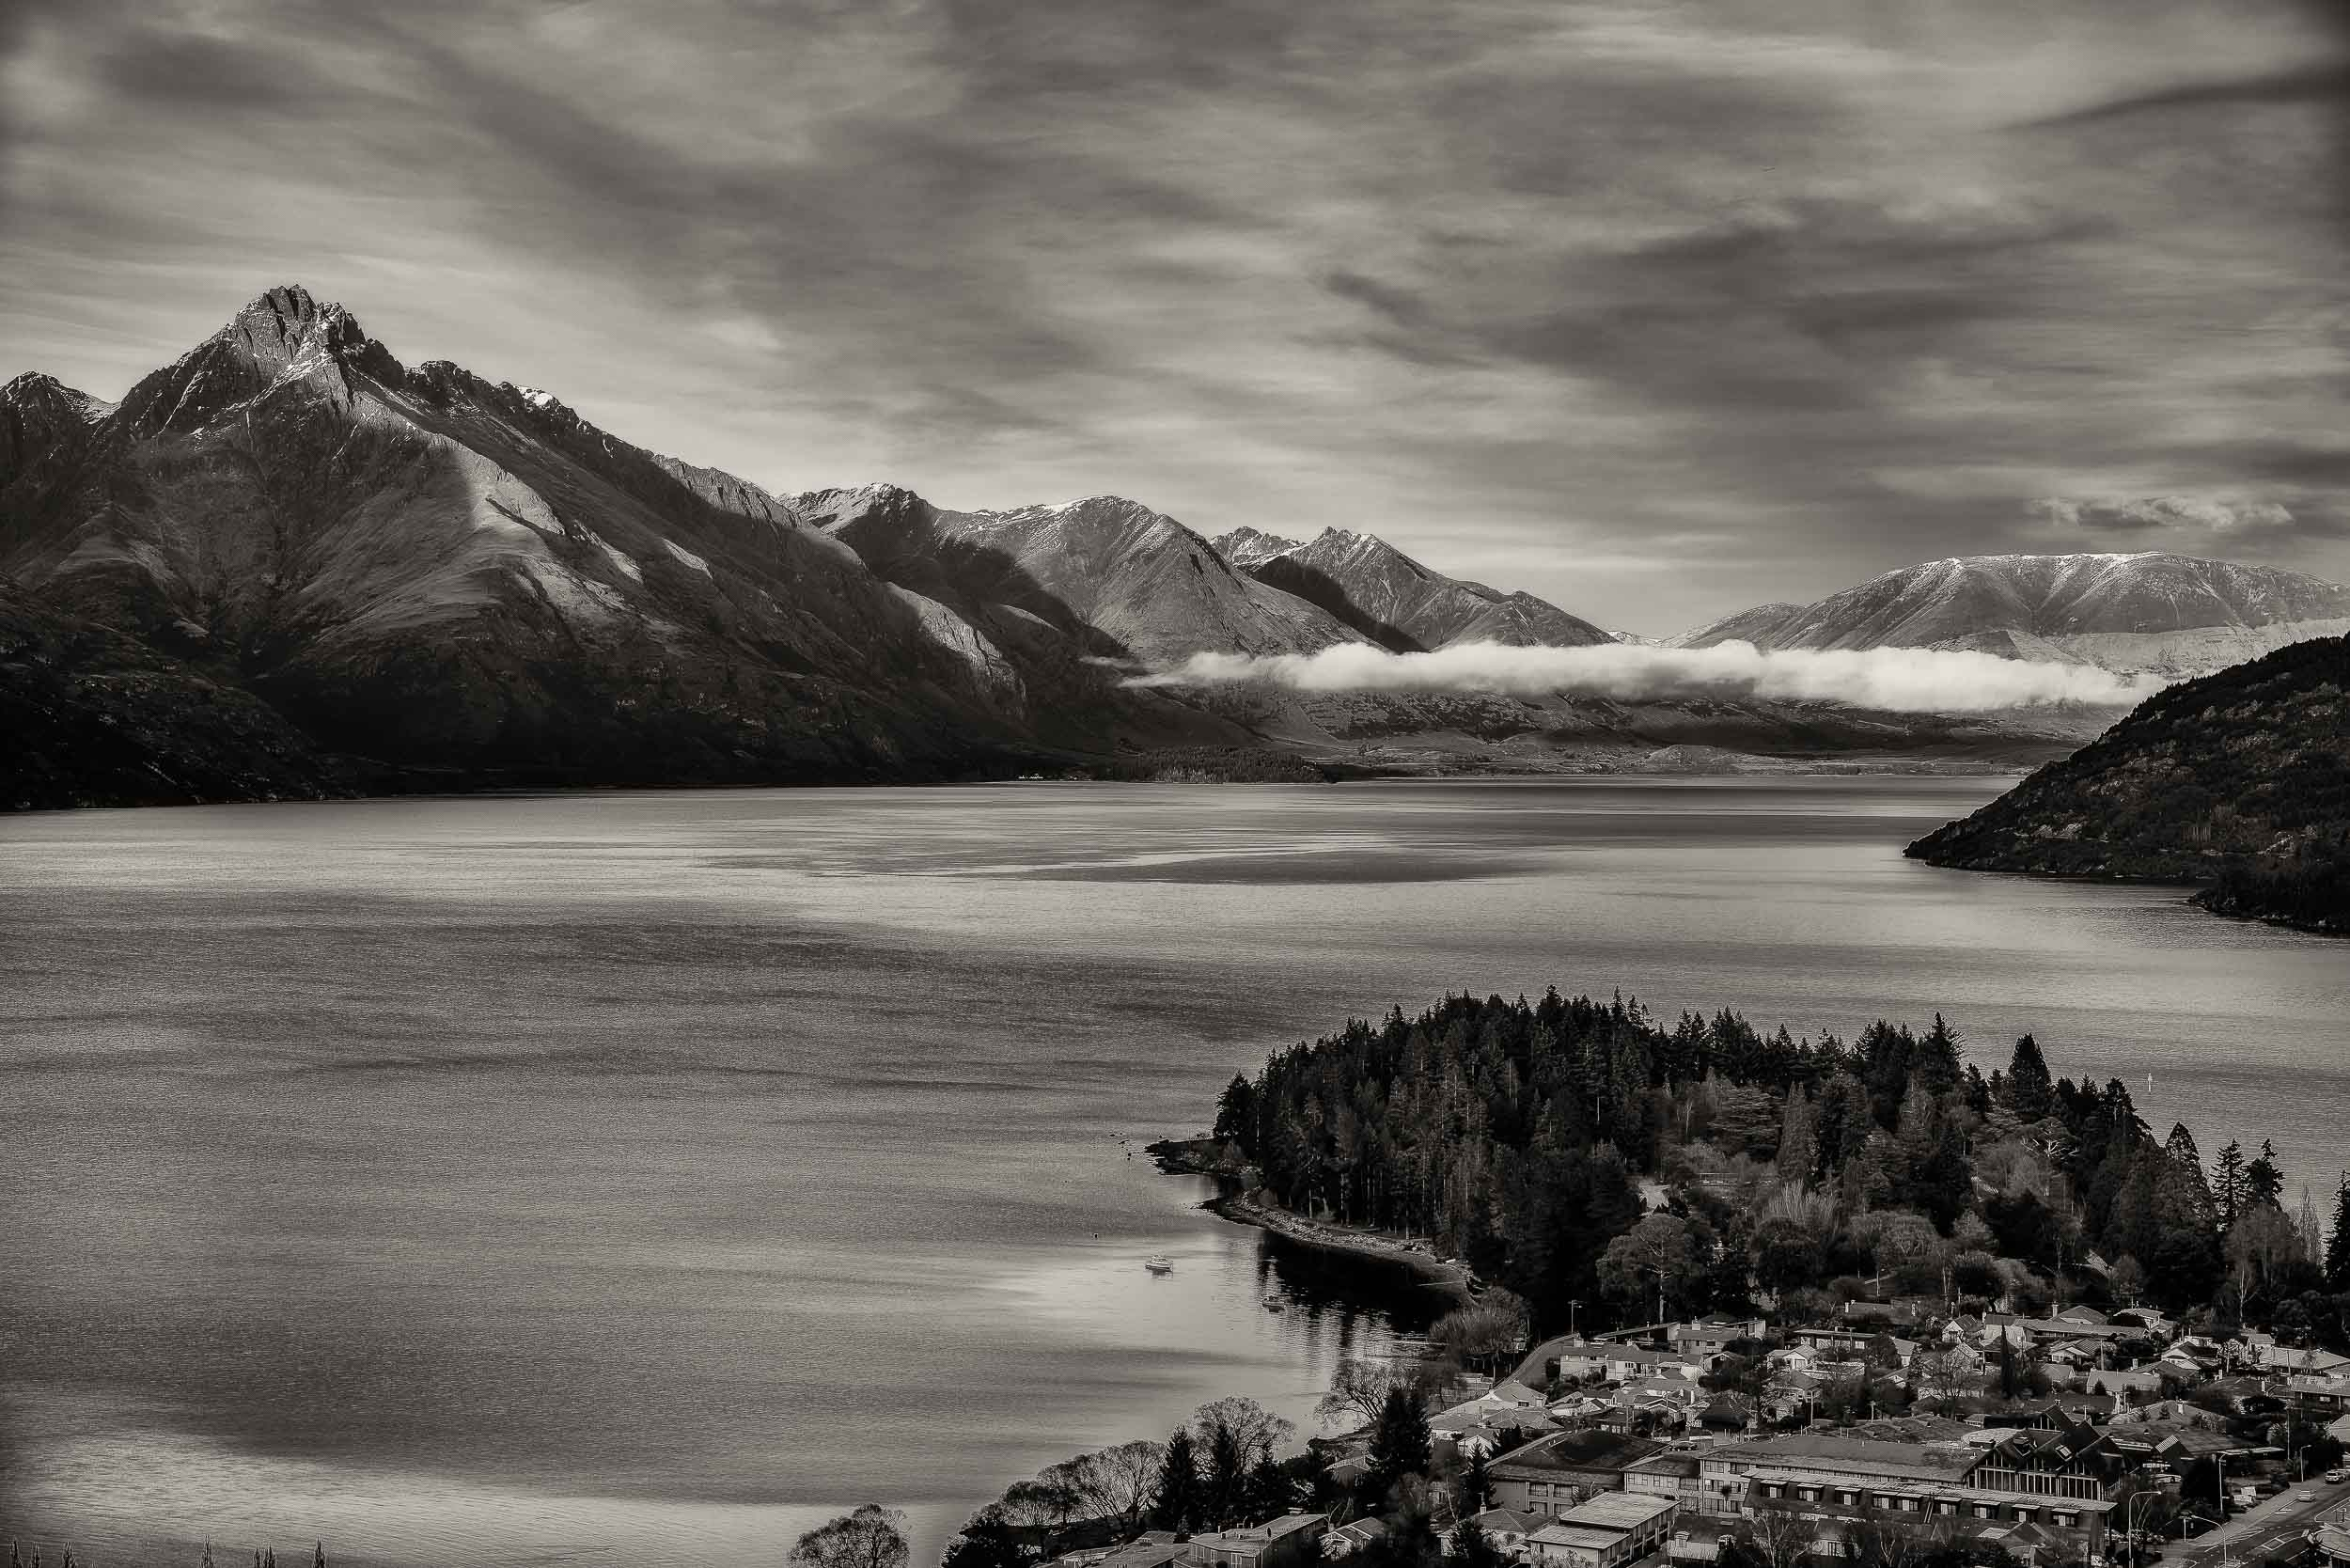 Magnificent view over    Lake Wakatipu    in    Queenstown, New Zealand   .